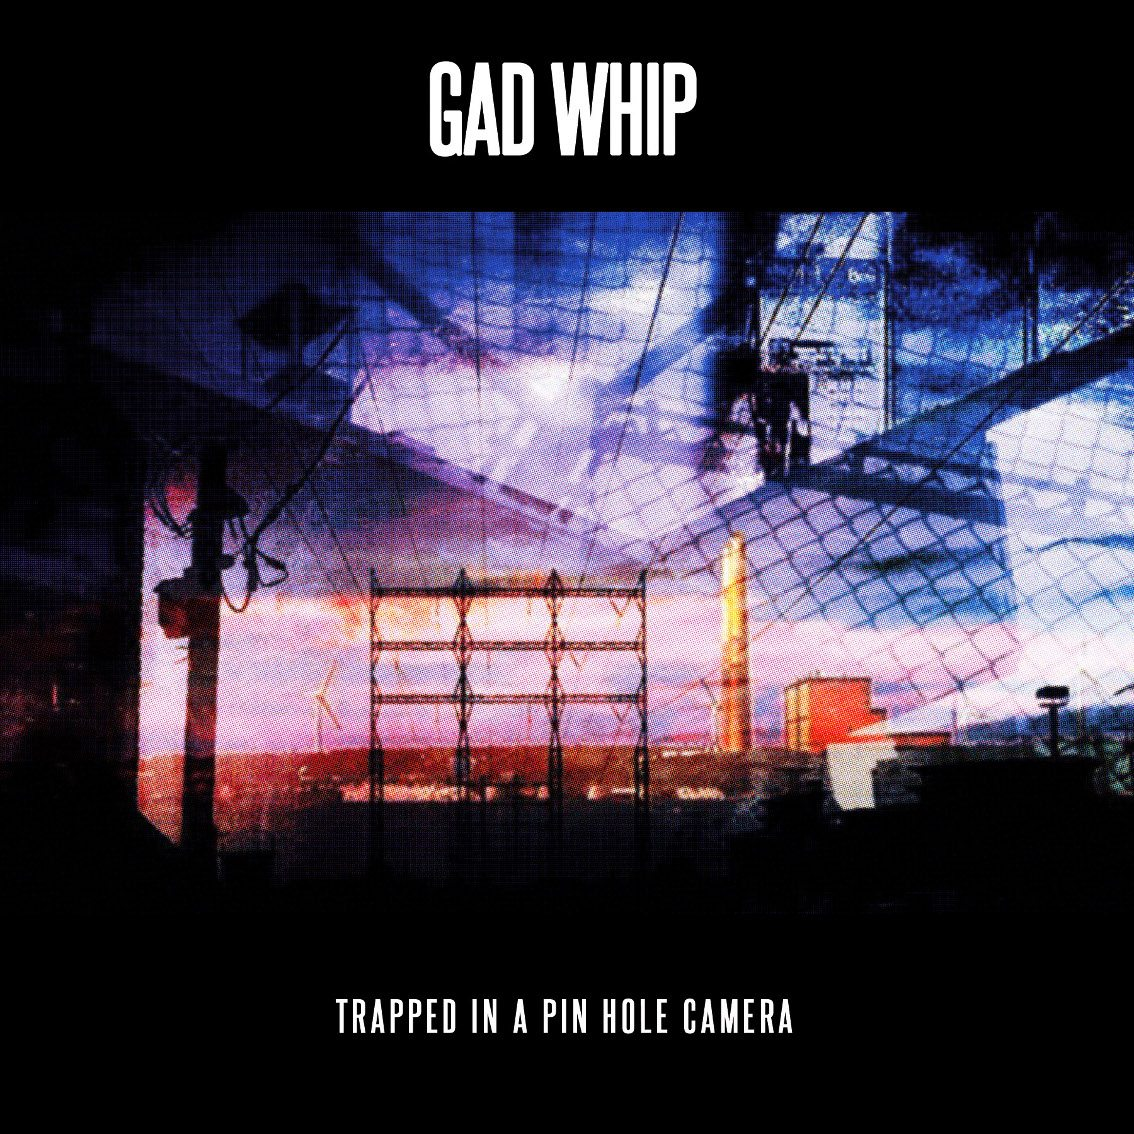 Post-punk act Gad Whip to launch'Trapped In A Pin Hole Camera' album on cassette